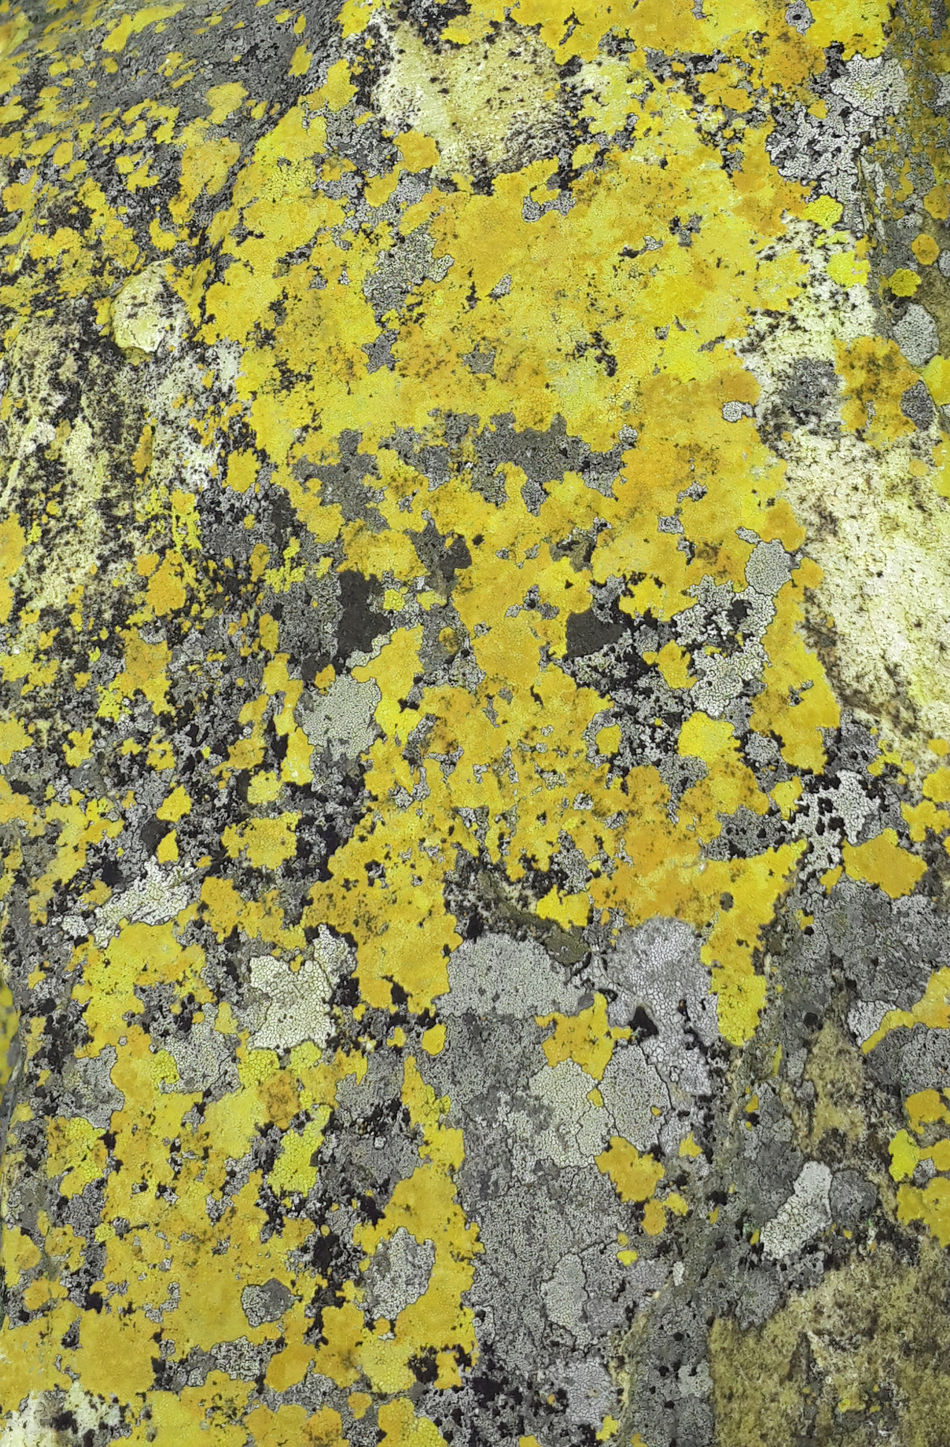 Grey And Yellow Grey And Yellow Colour Lichen Lichen On A Rock Moss Moss & Lichen Rock Rock Texture Rock Textures Yellow And Gray Yellow And Grey